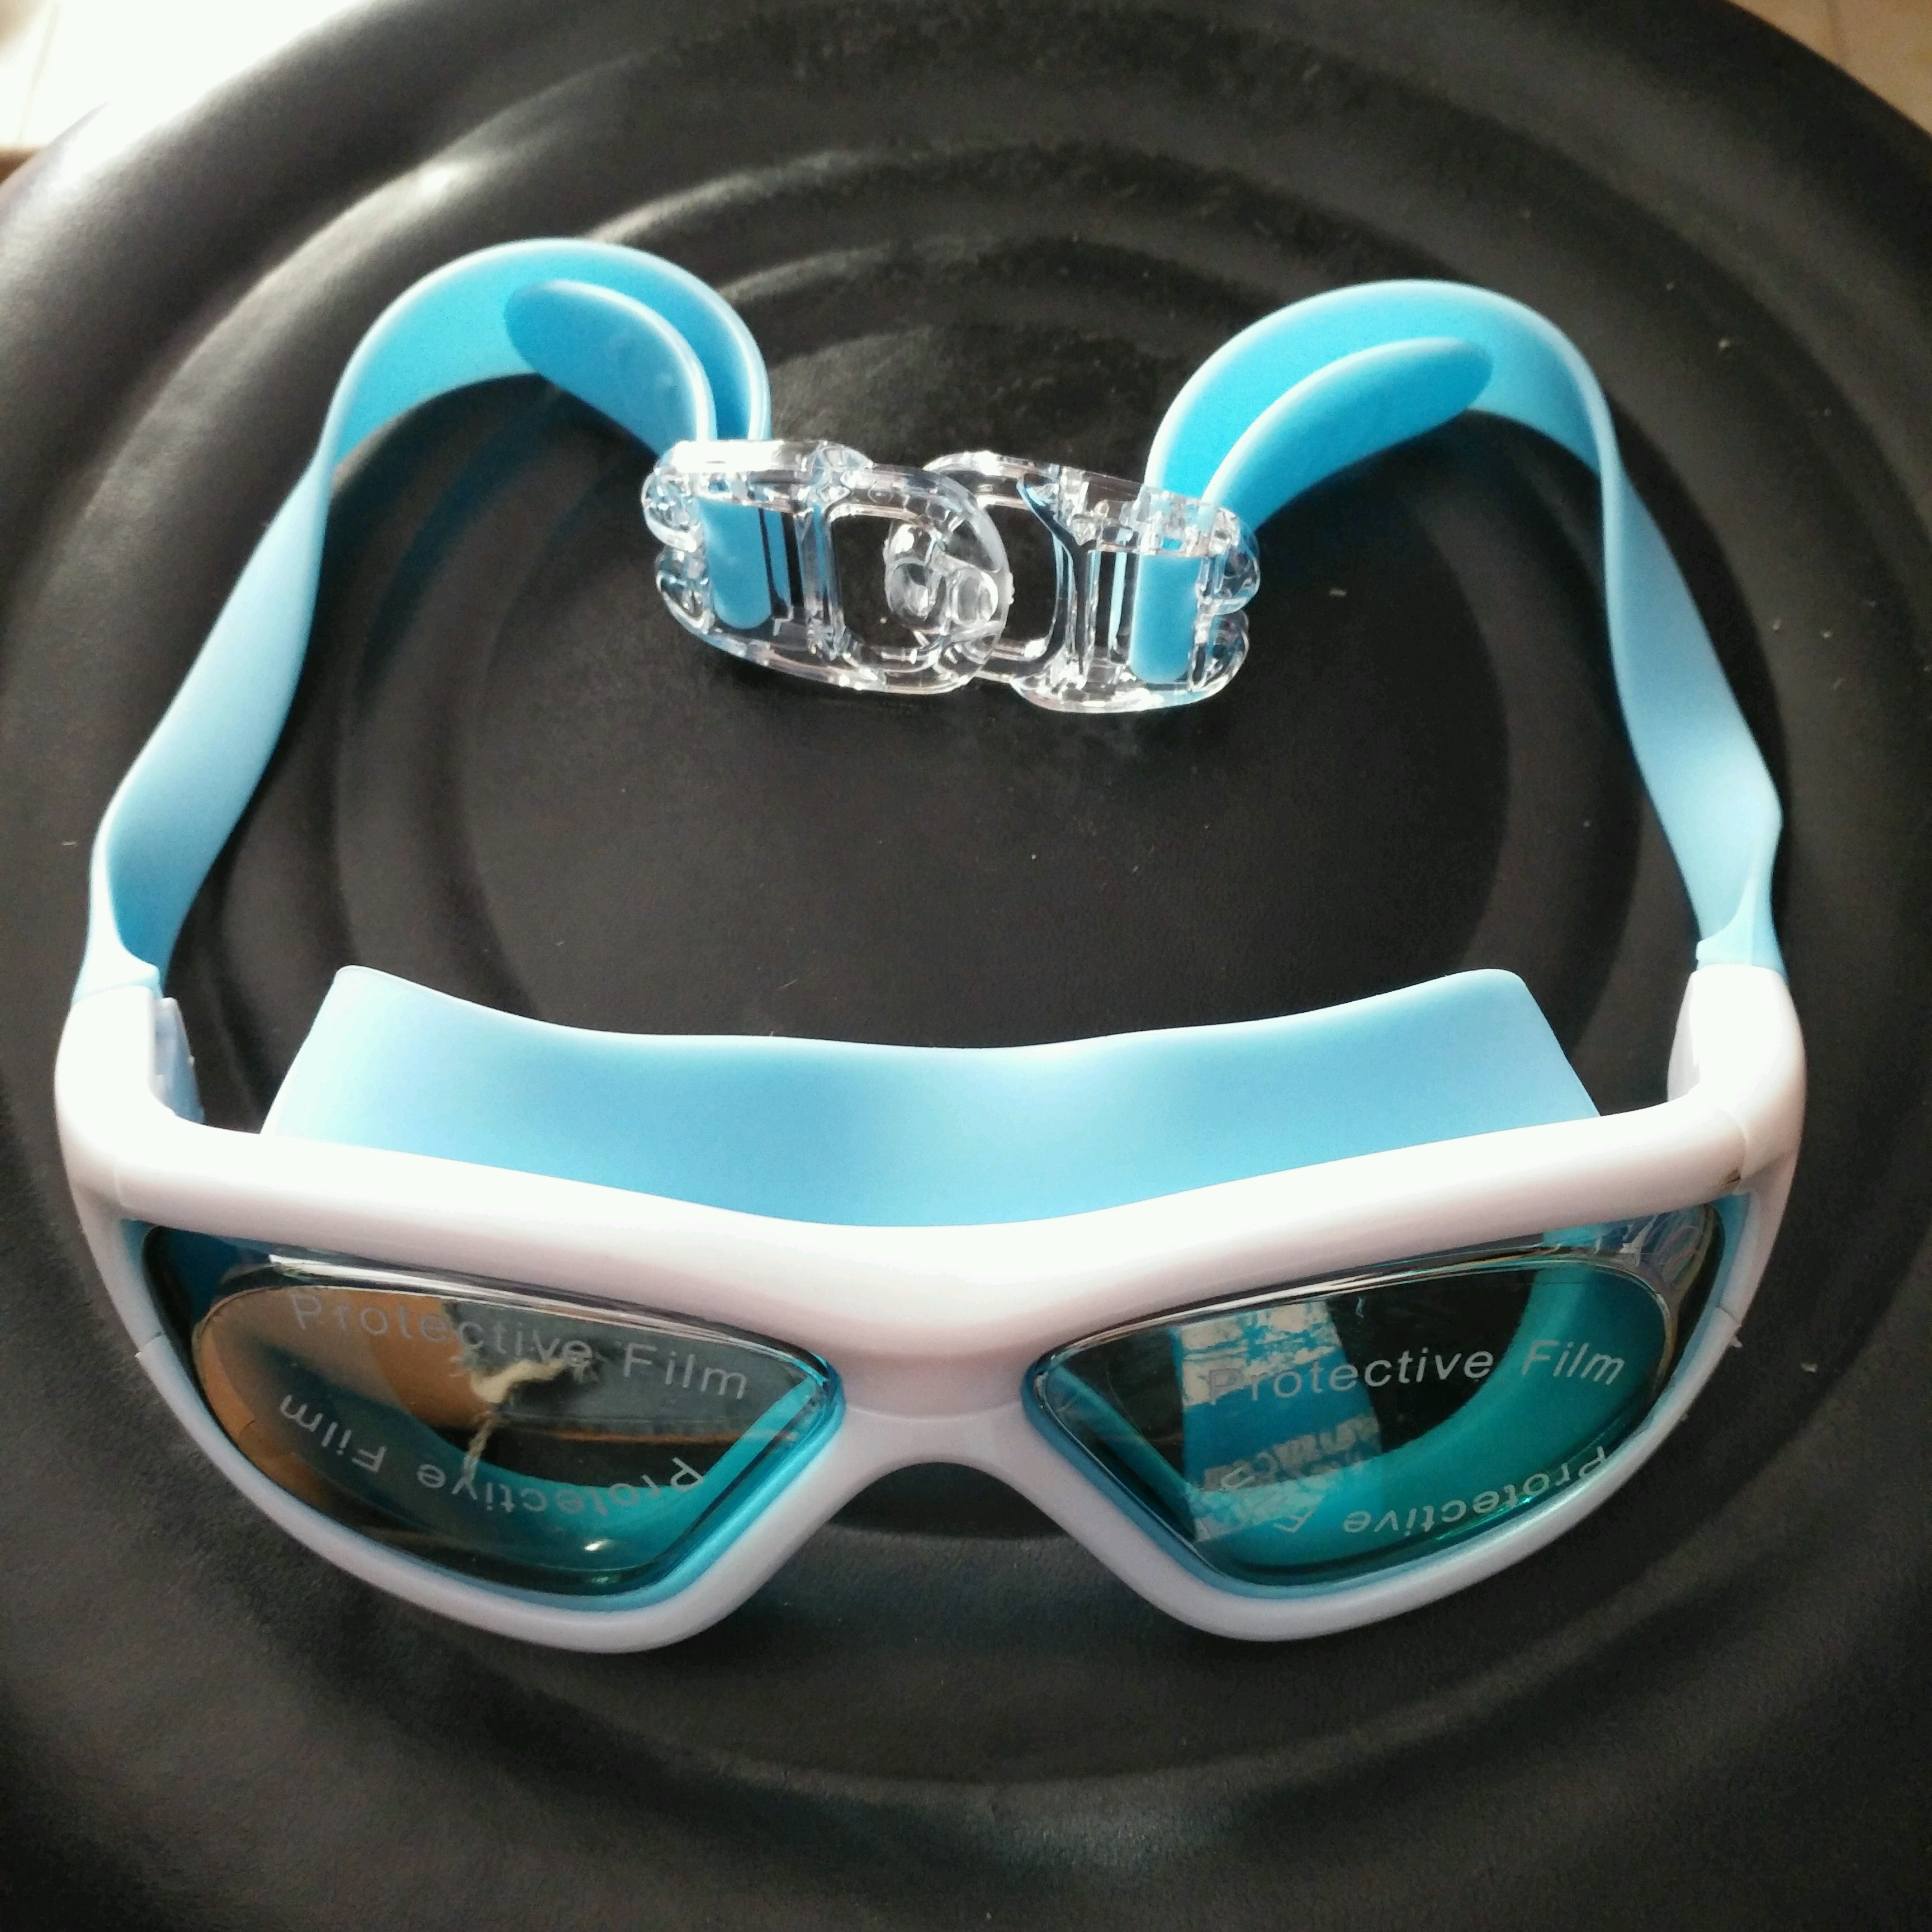 ... Swimming Goggle Kaca Mata Renang. Source · Lasido Kacamata Renang Anak Anti Fog Protection Berenang Children ... - Peralatan .